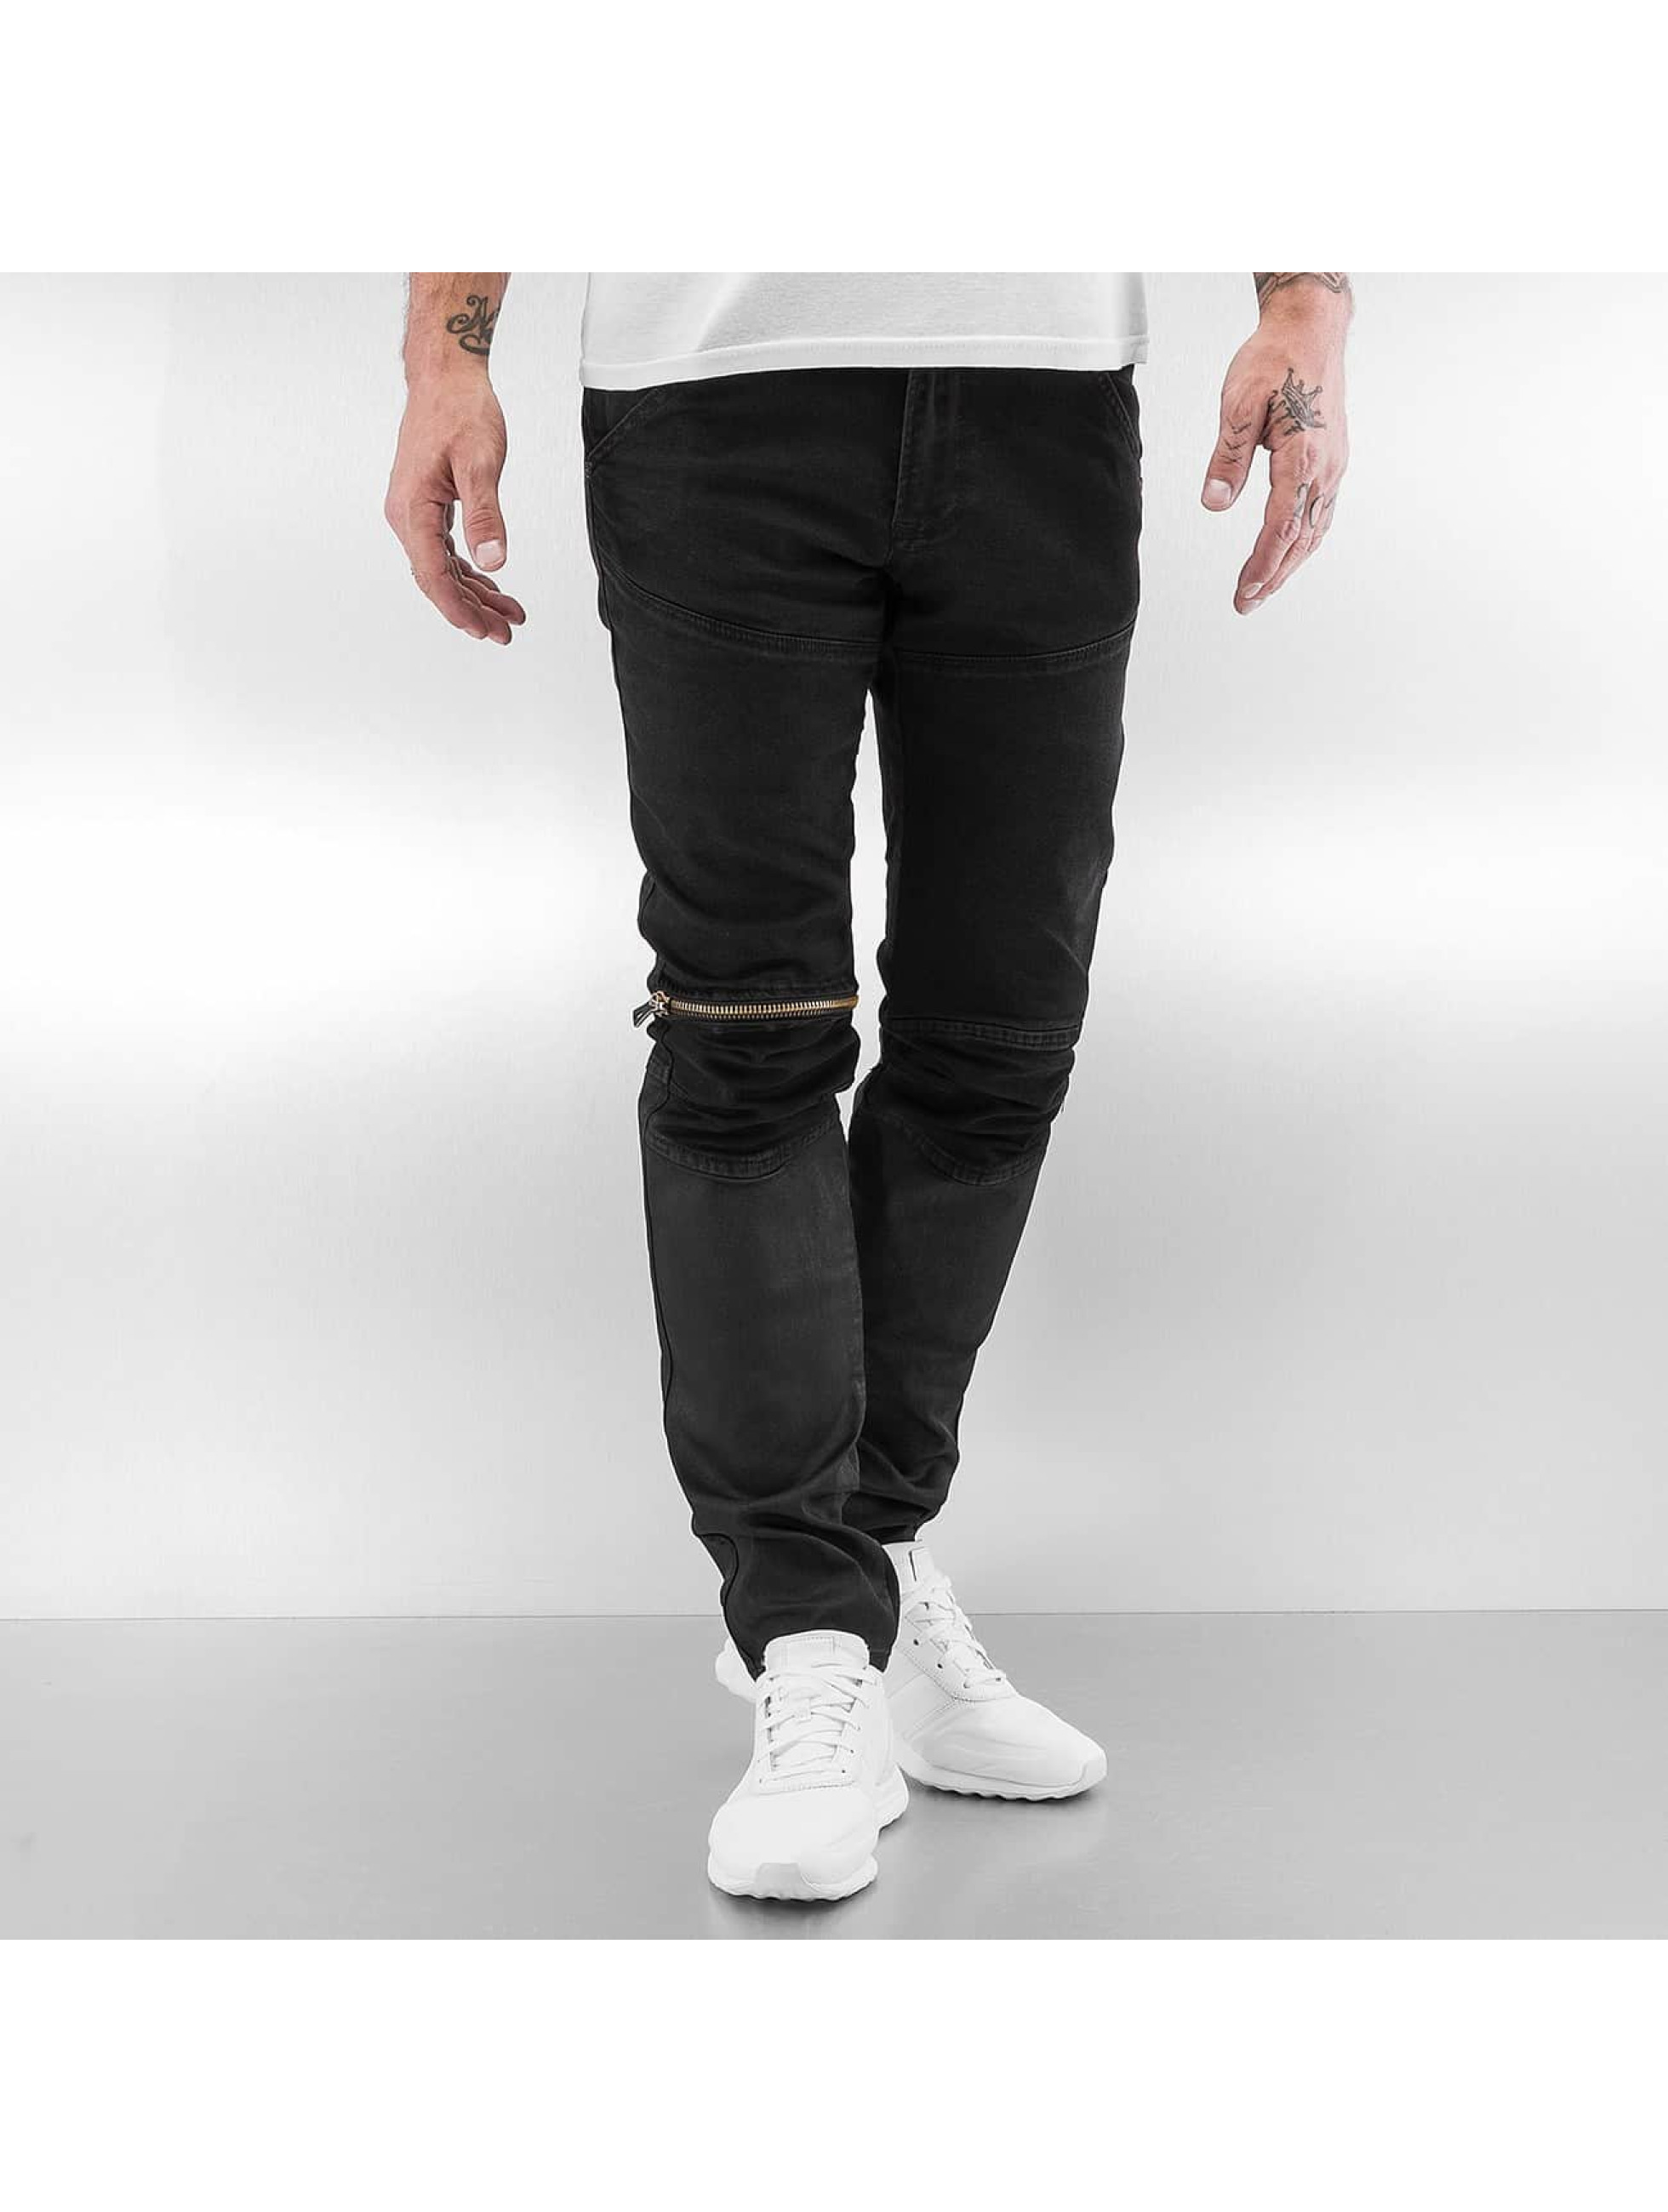 2Y / Slim Fit Jeans Avery in black W 36